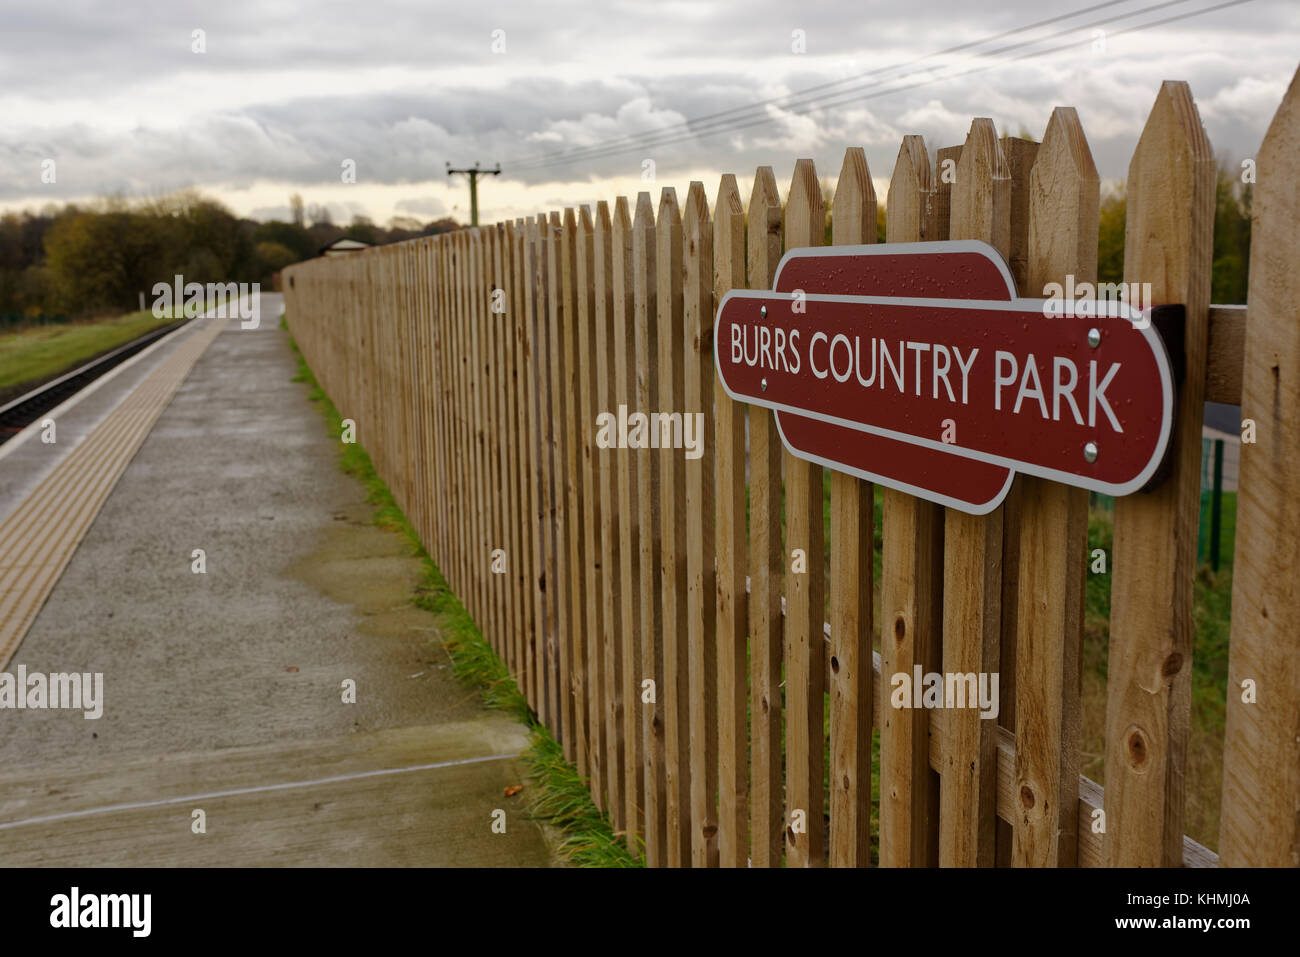 Burrs country park totem railway sign mounted on wooden fencing on the east lancashire railway station platform Stock Photo